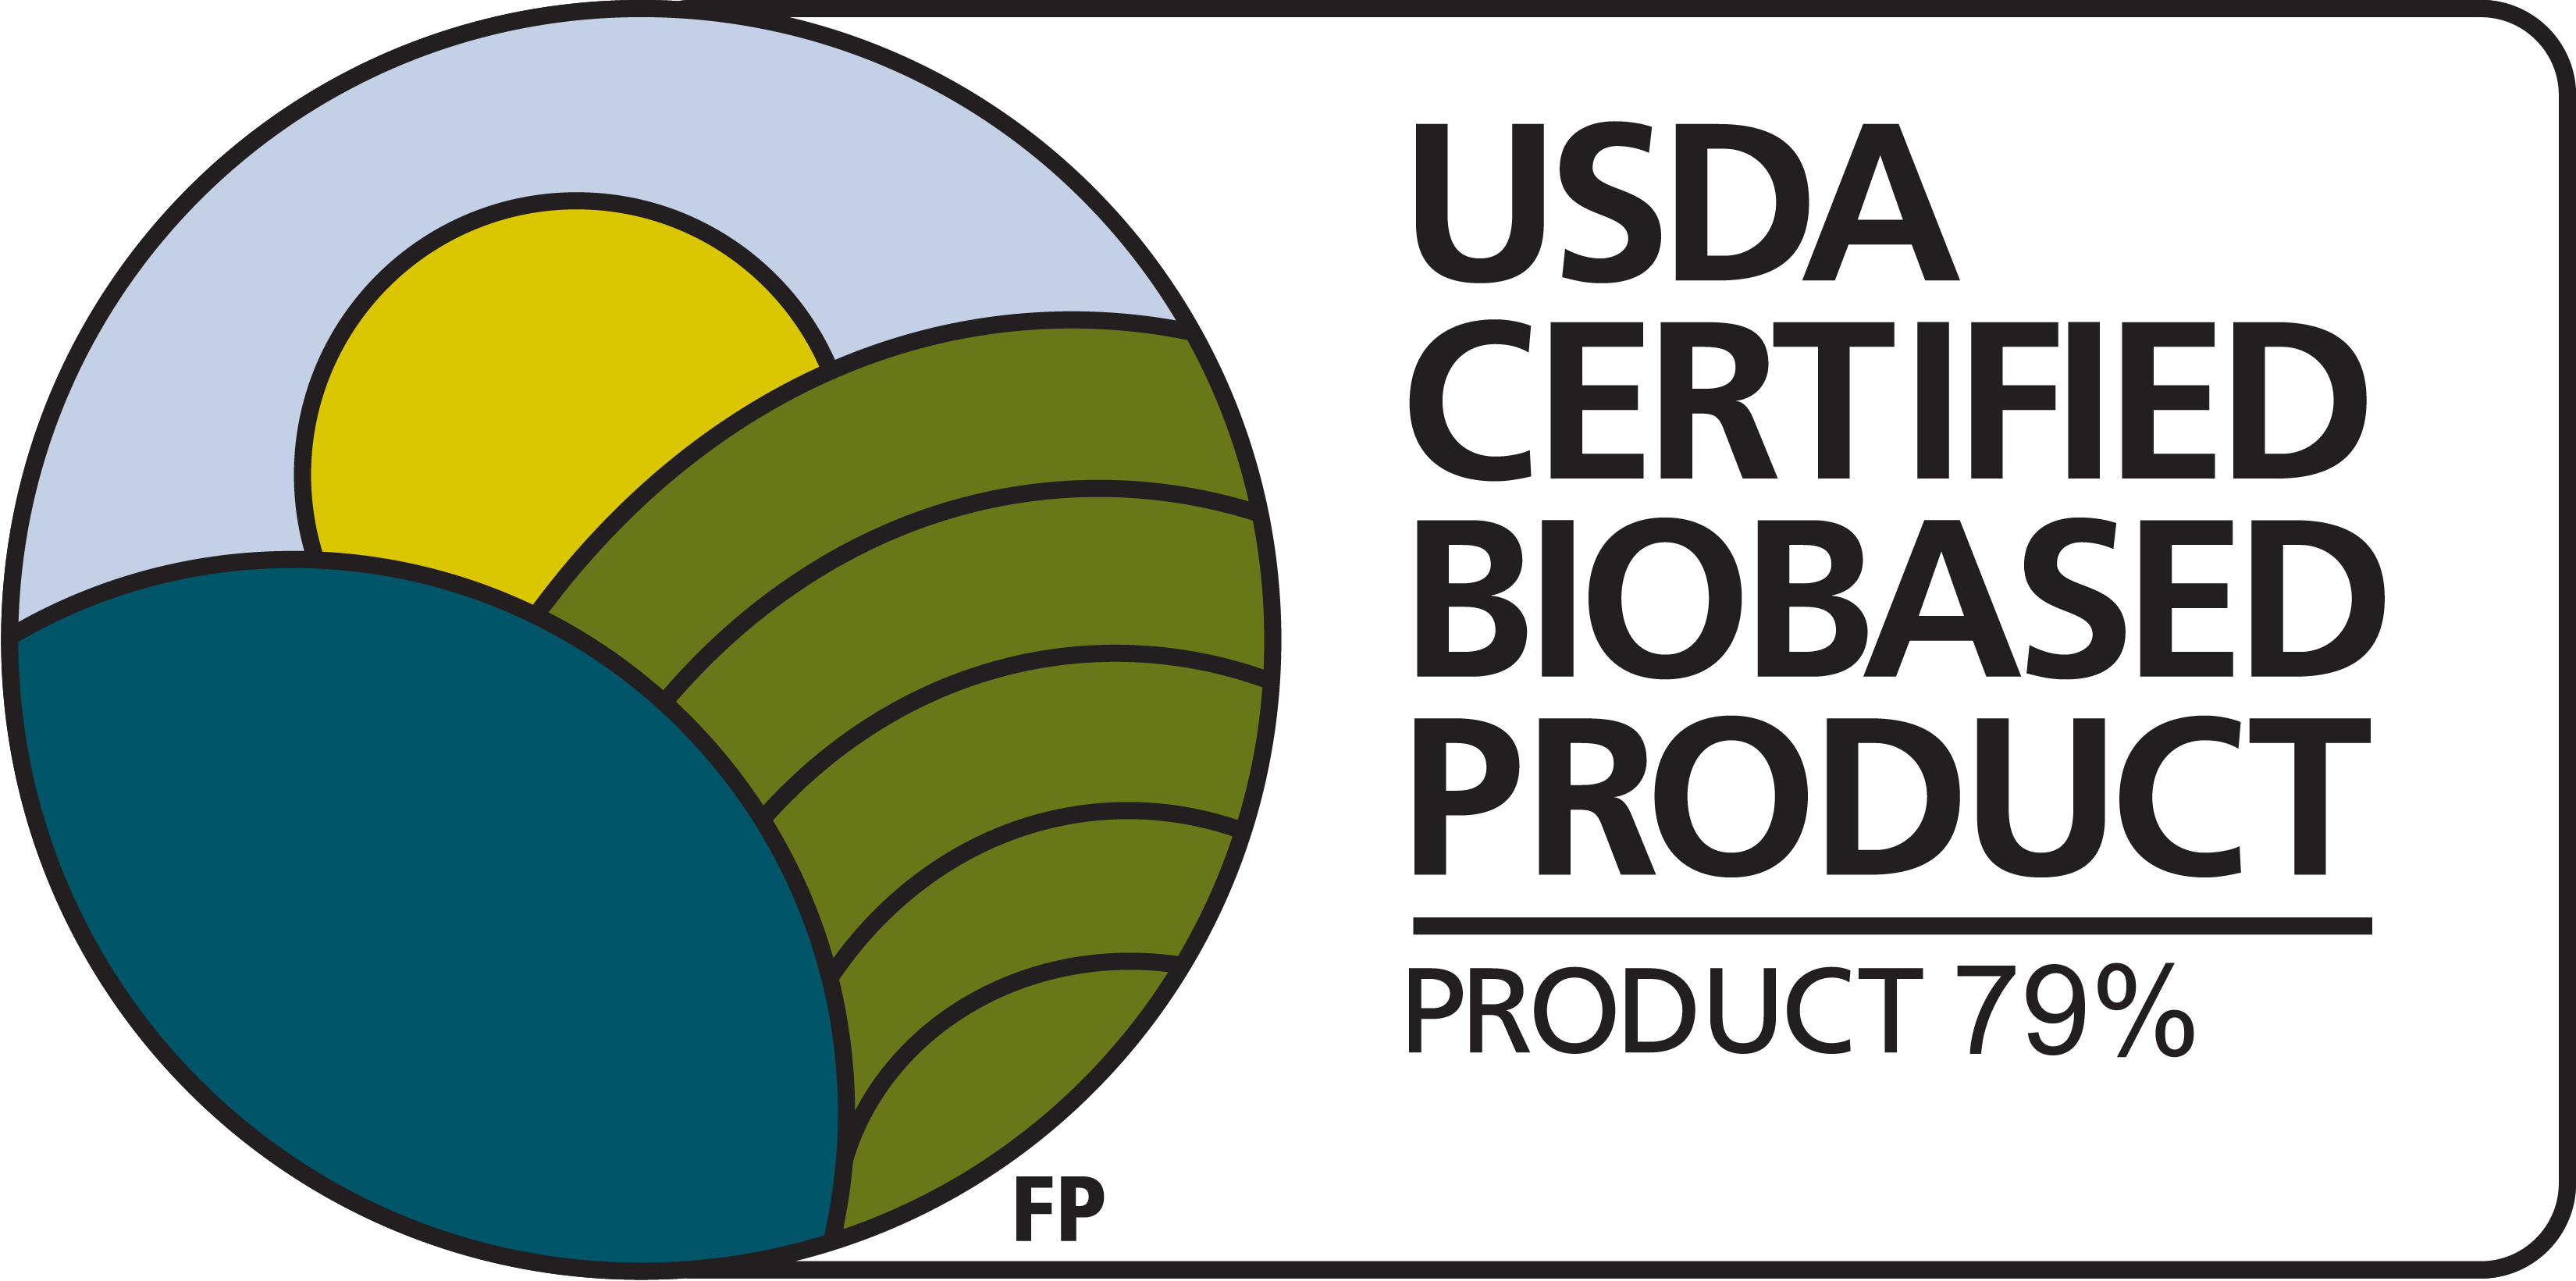 Honest Dish Soap is a USDA Certified Biobased Product Label shown